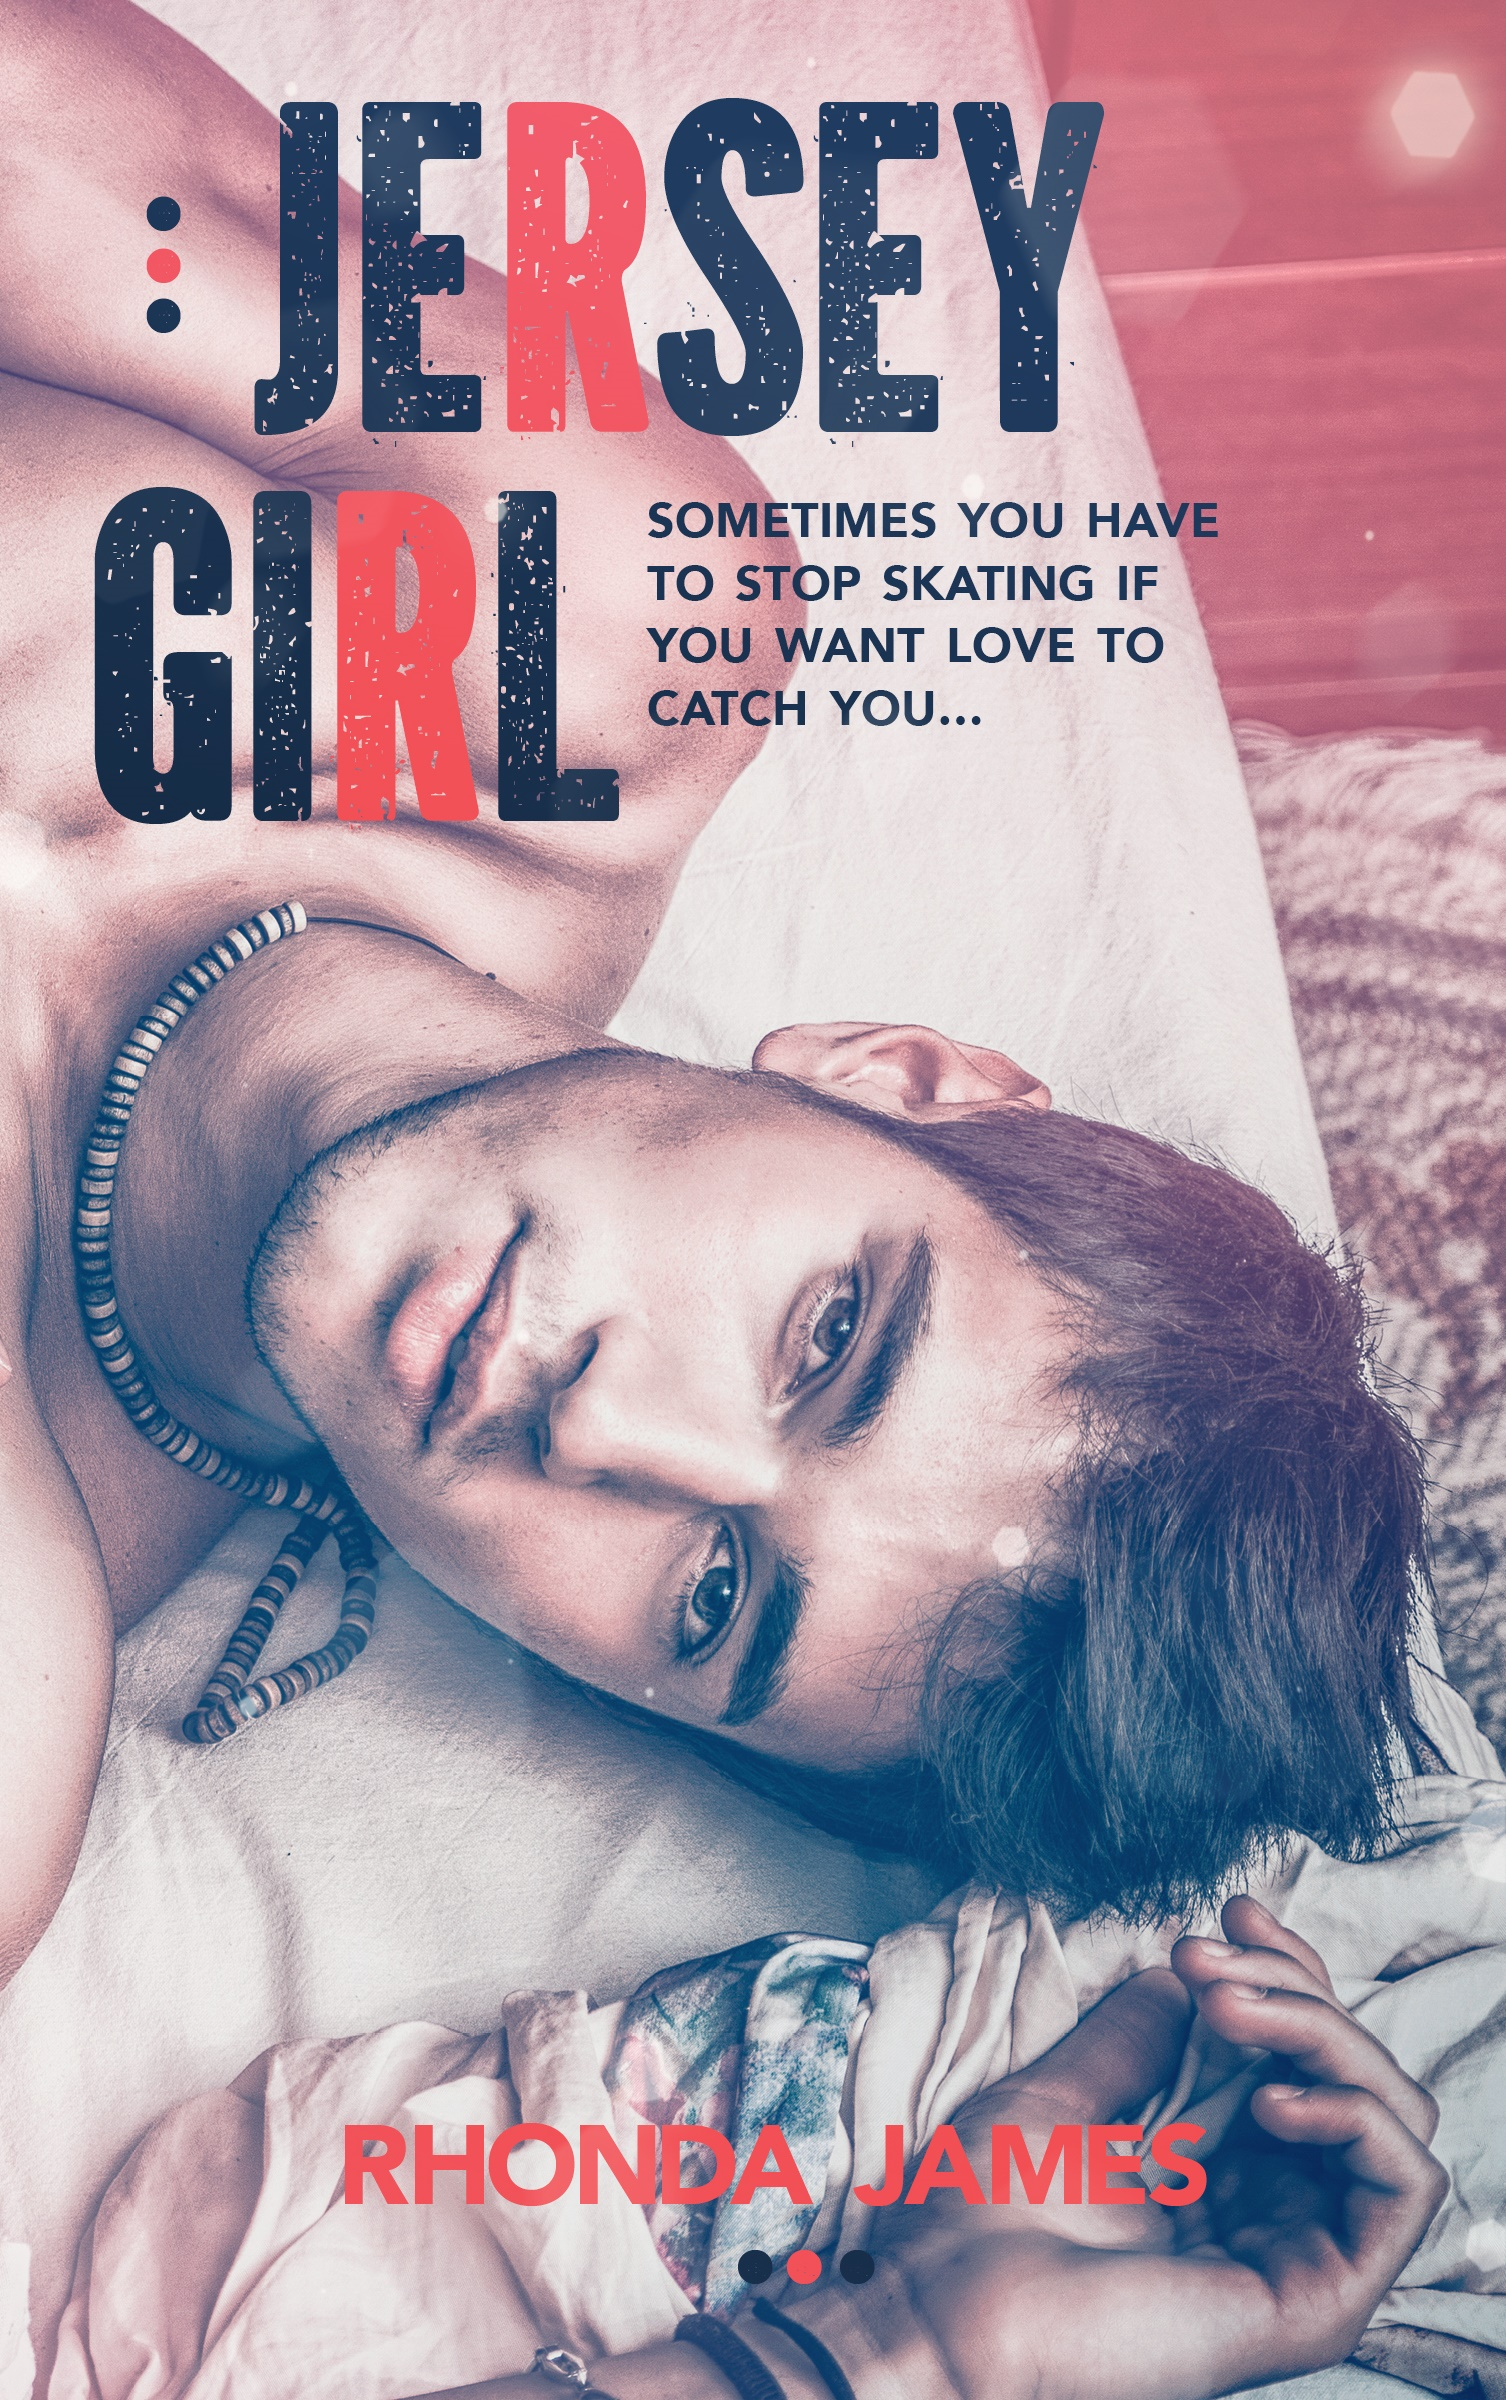 Jersey girl cover 2